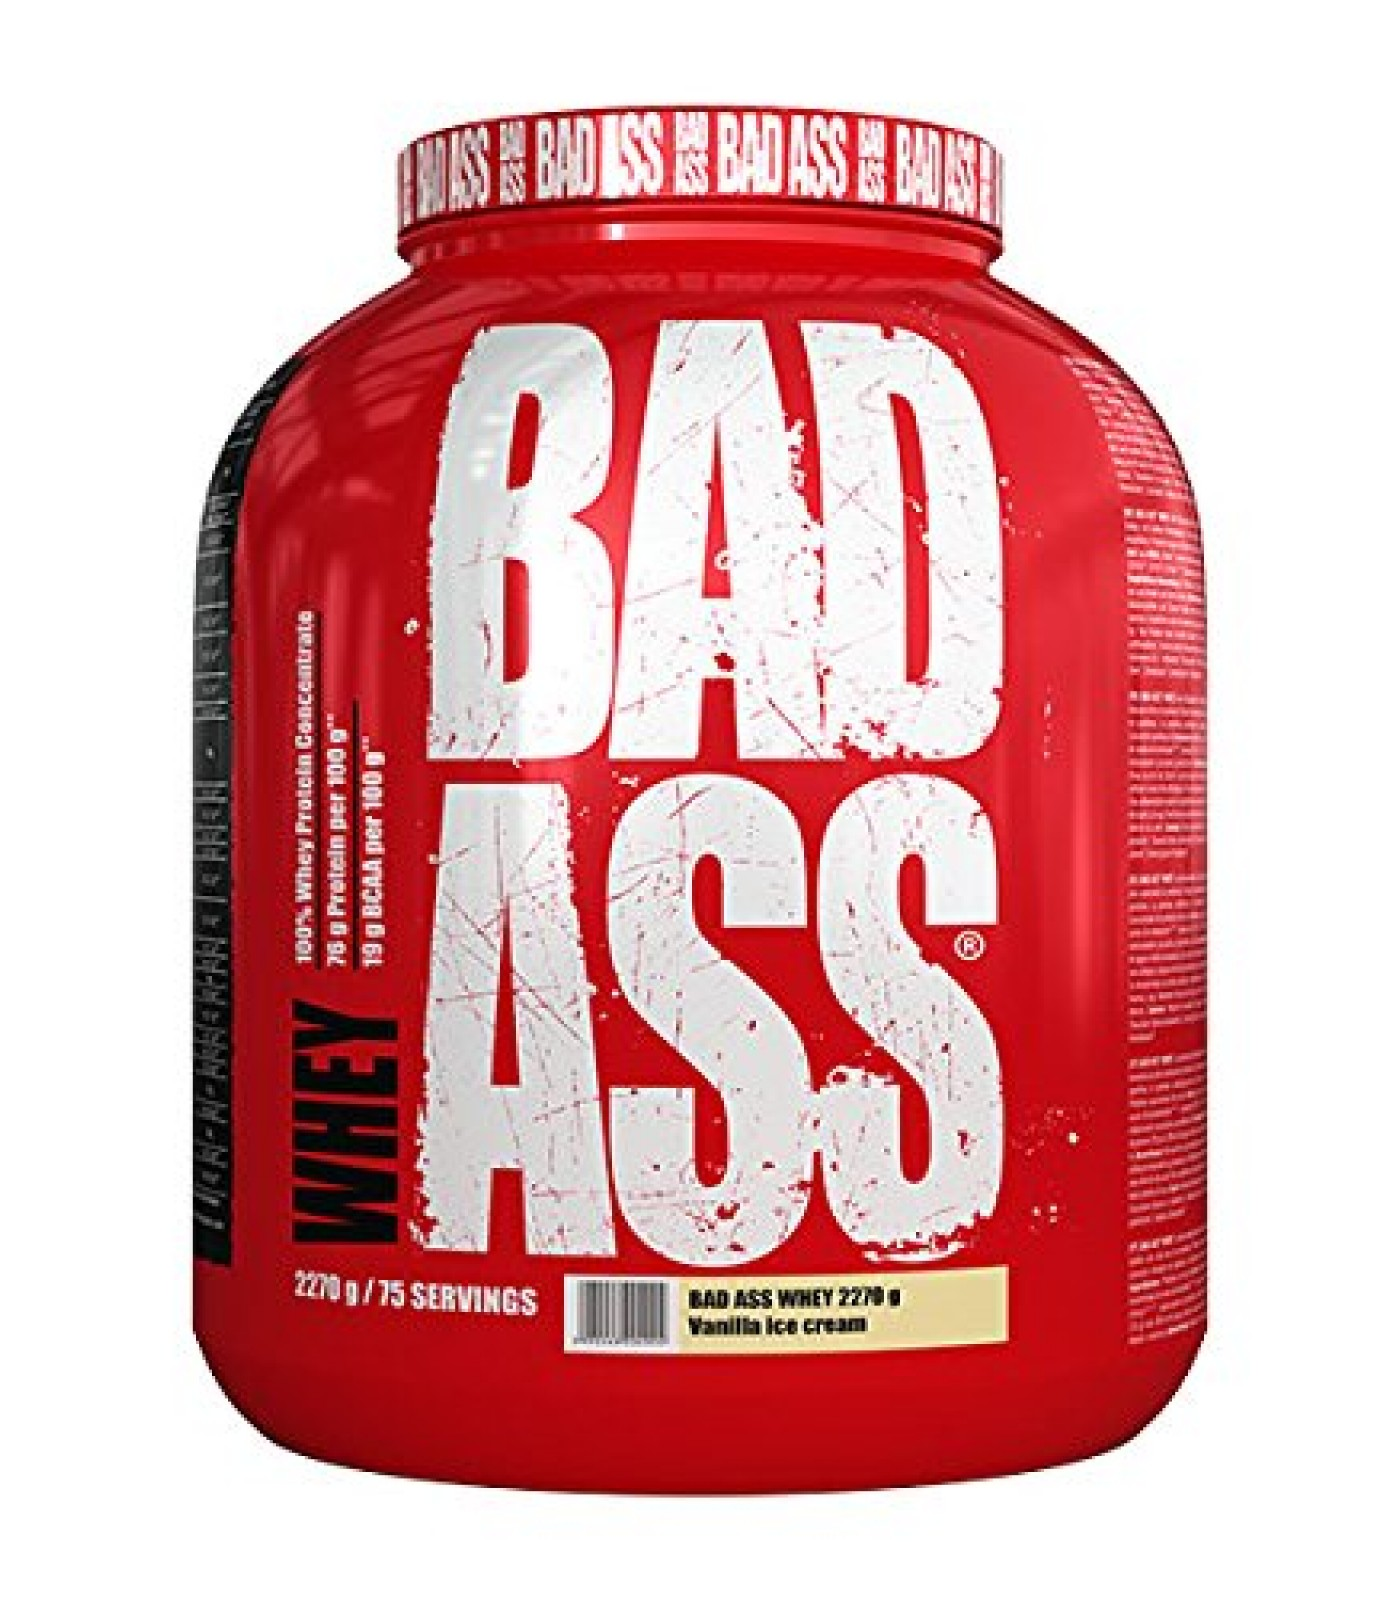 BAD ASS - BAD ASS / Whey / Premium Protein